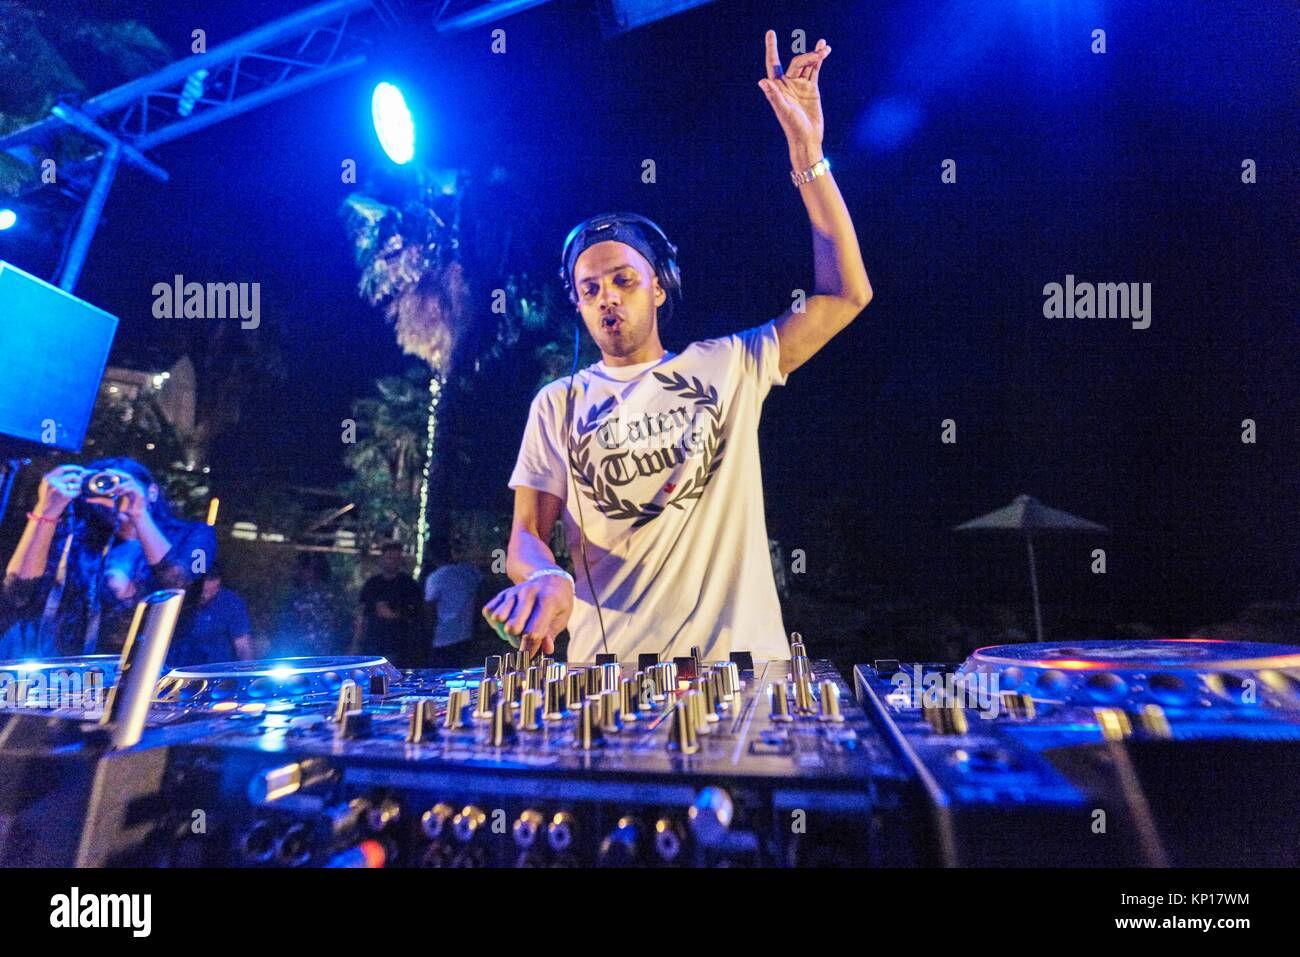 DJ Artistic Raw playing at Starbeach Beach Party on 04. September 2017 - Stock Image